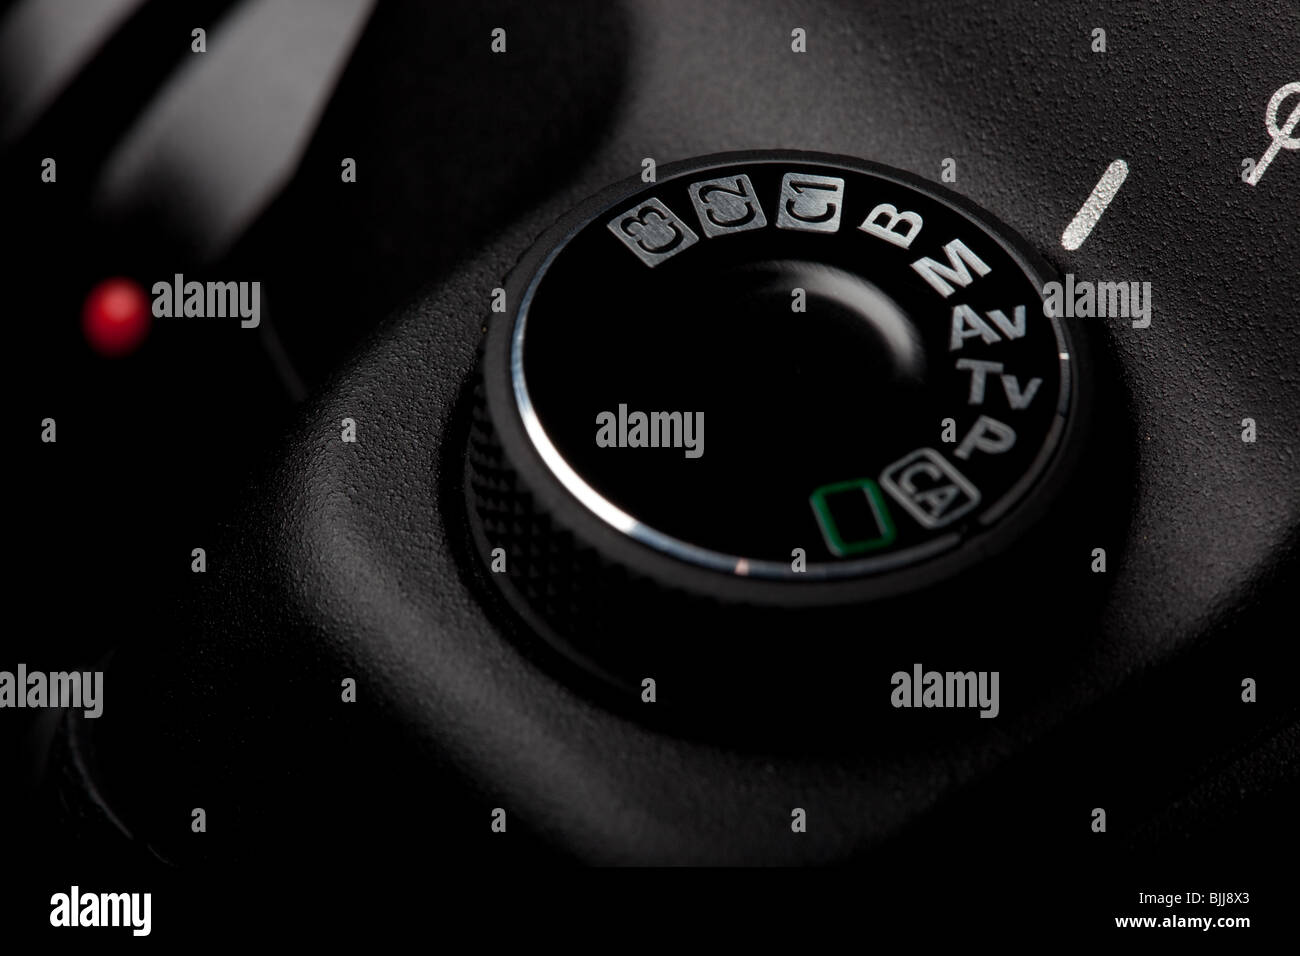 Selection of manual mode